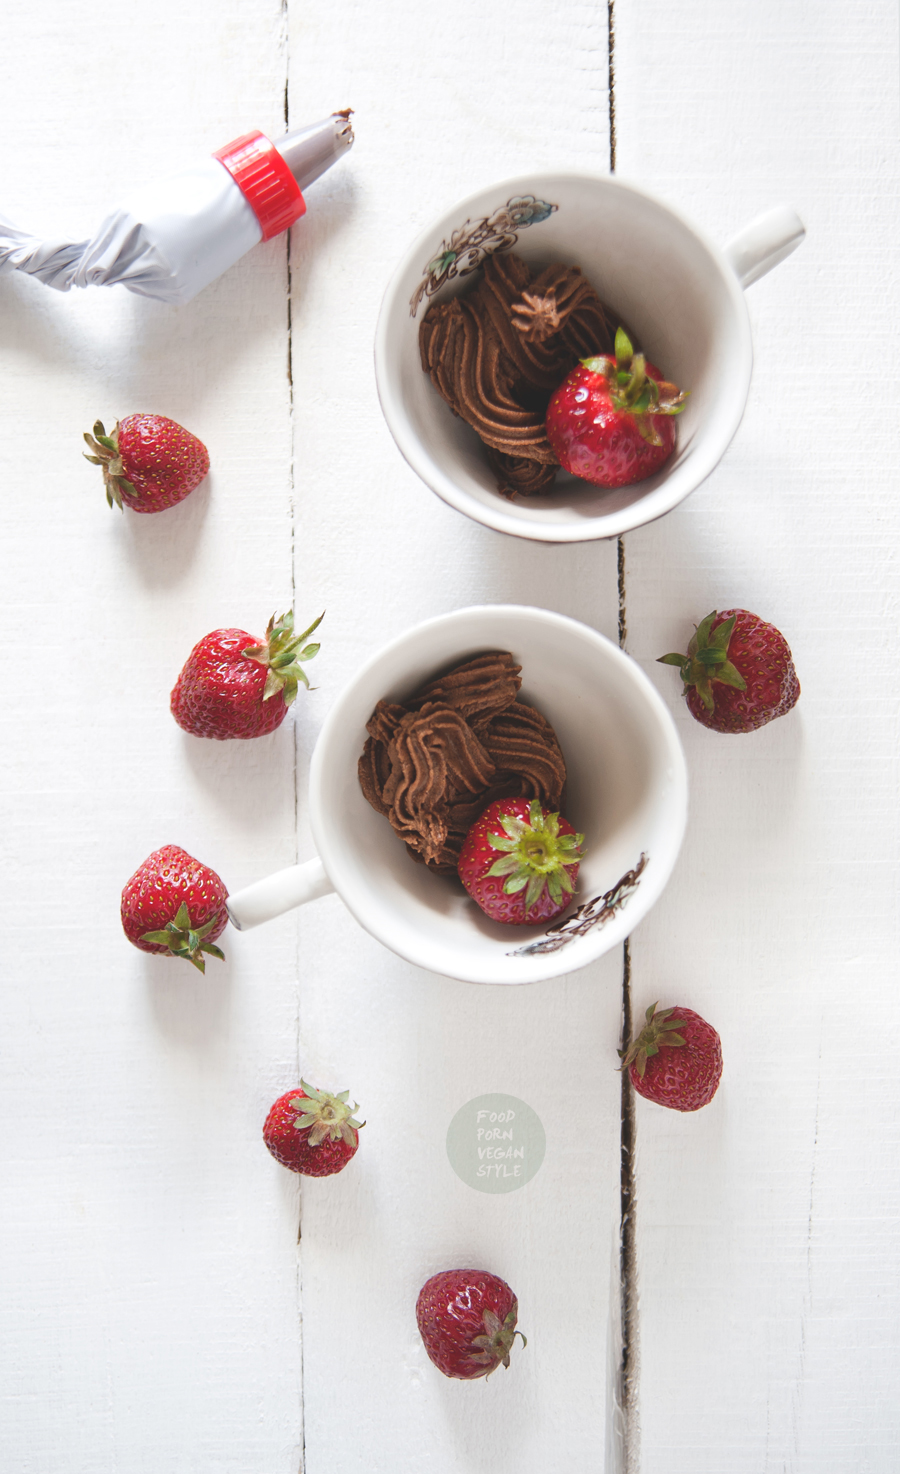 Strawberries with chocolate cream